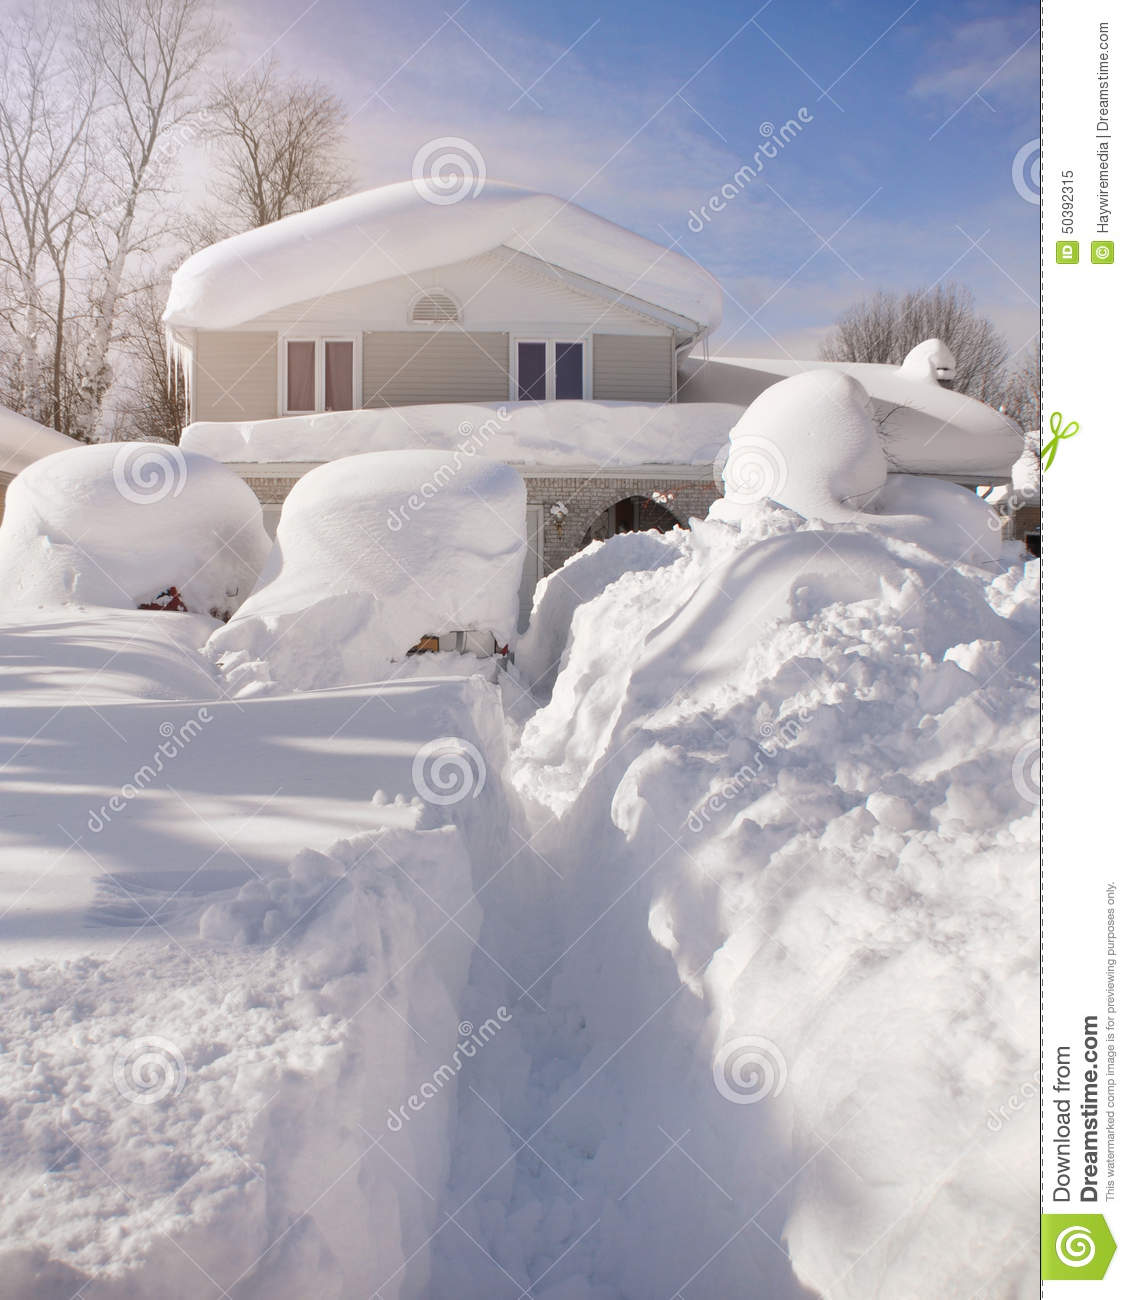 Worst Blizzards Ever Snow Covered House From Blizzard Stock Image Image Of